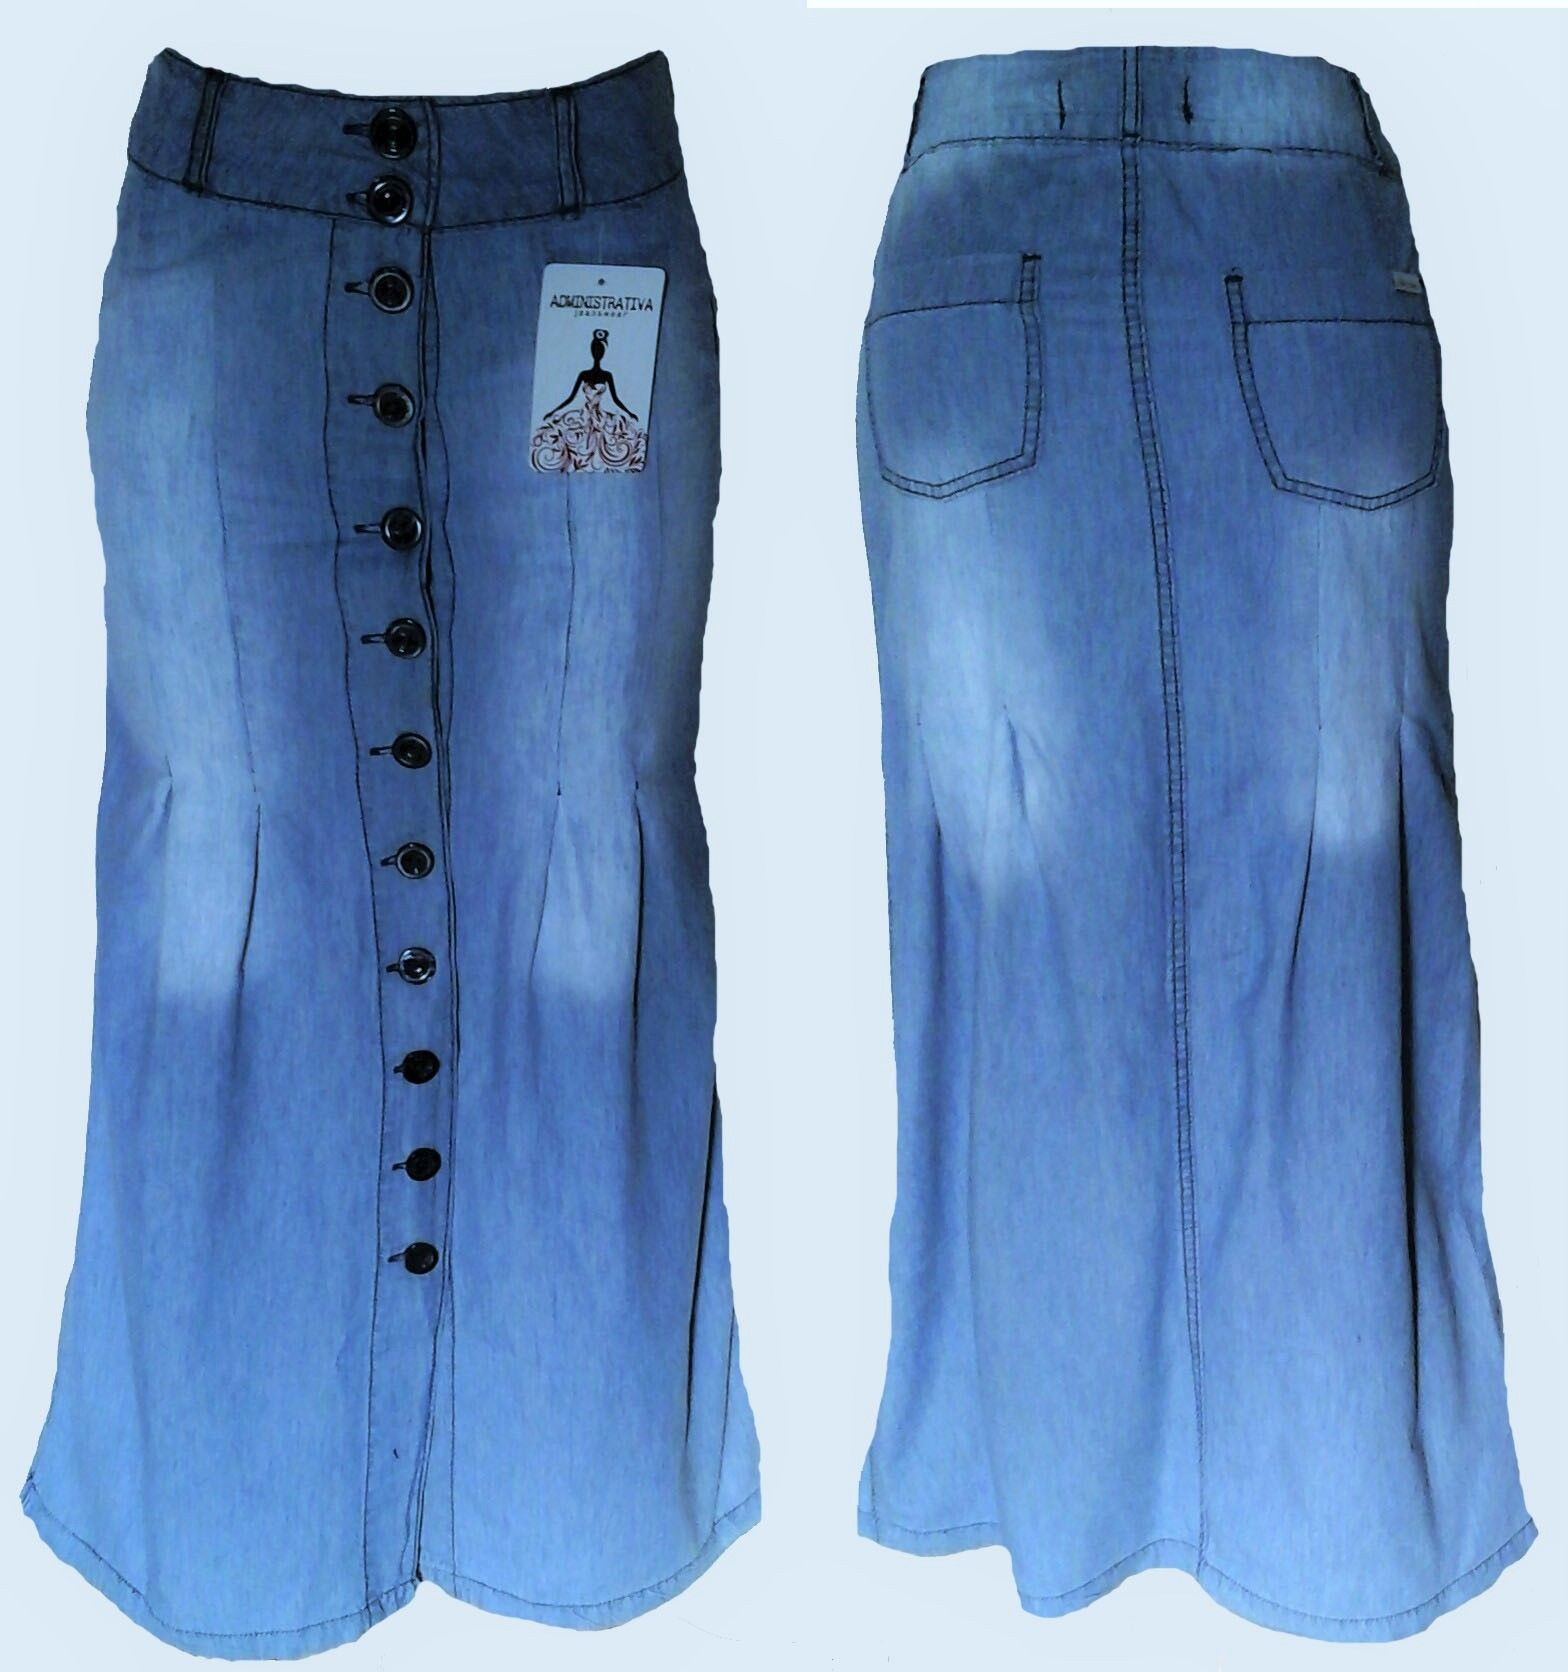 50cafbf378 ADM Jeans (admjeans) on Pinterest